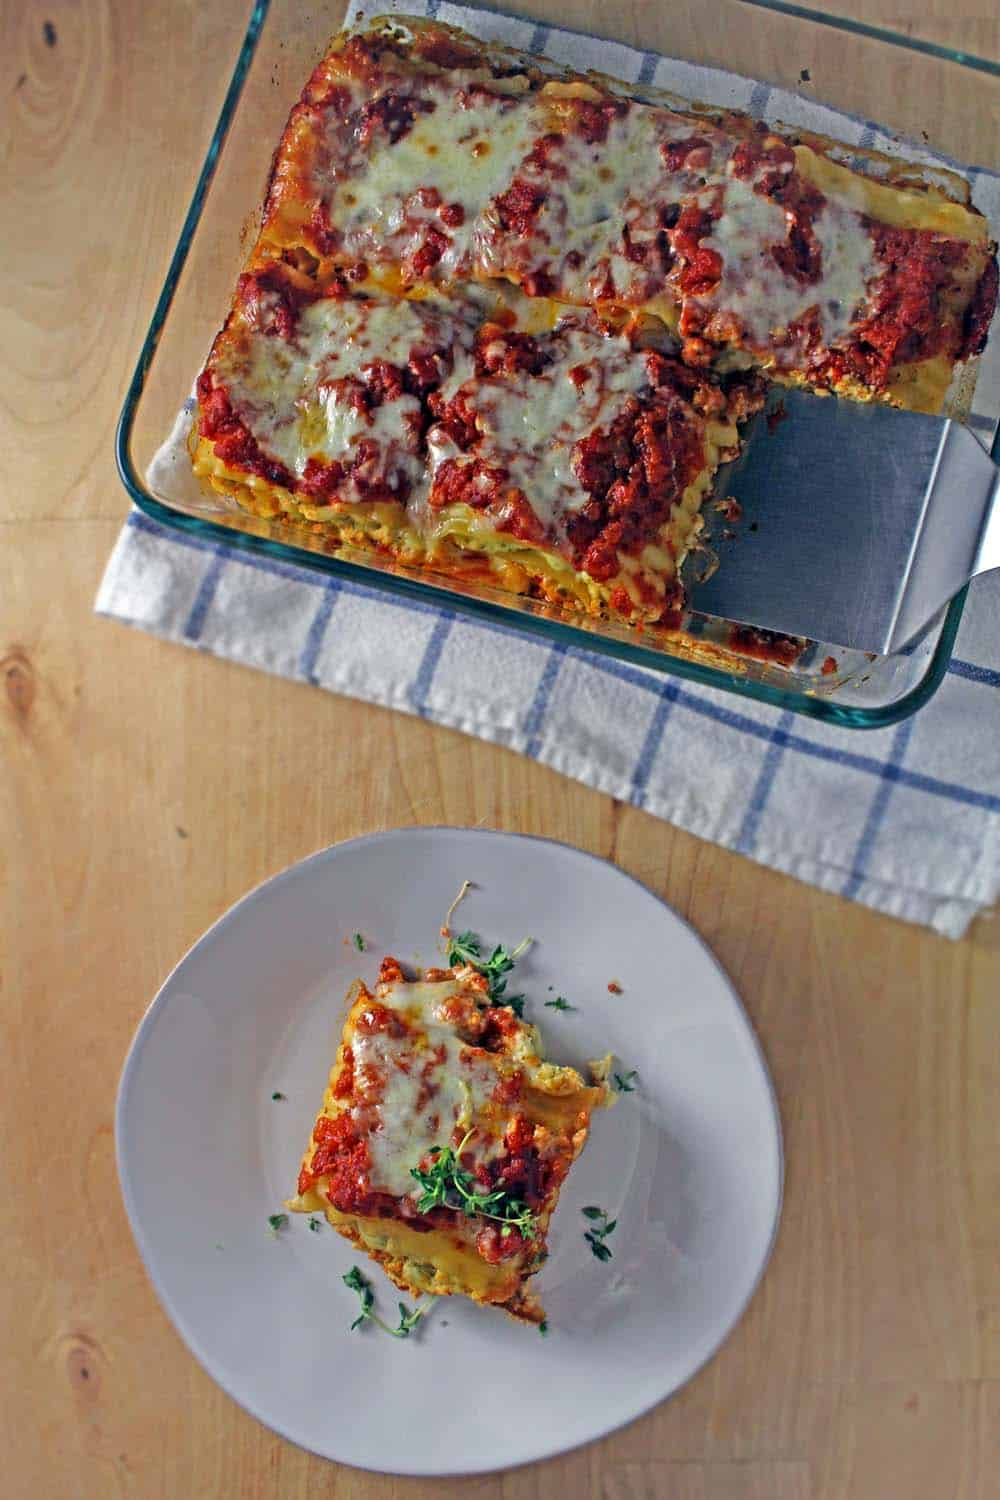 Bird's eye vide of a glass casserole holding chicken pesto lasagna roll ups and a white plate holding a piece.